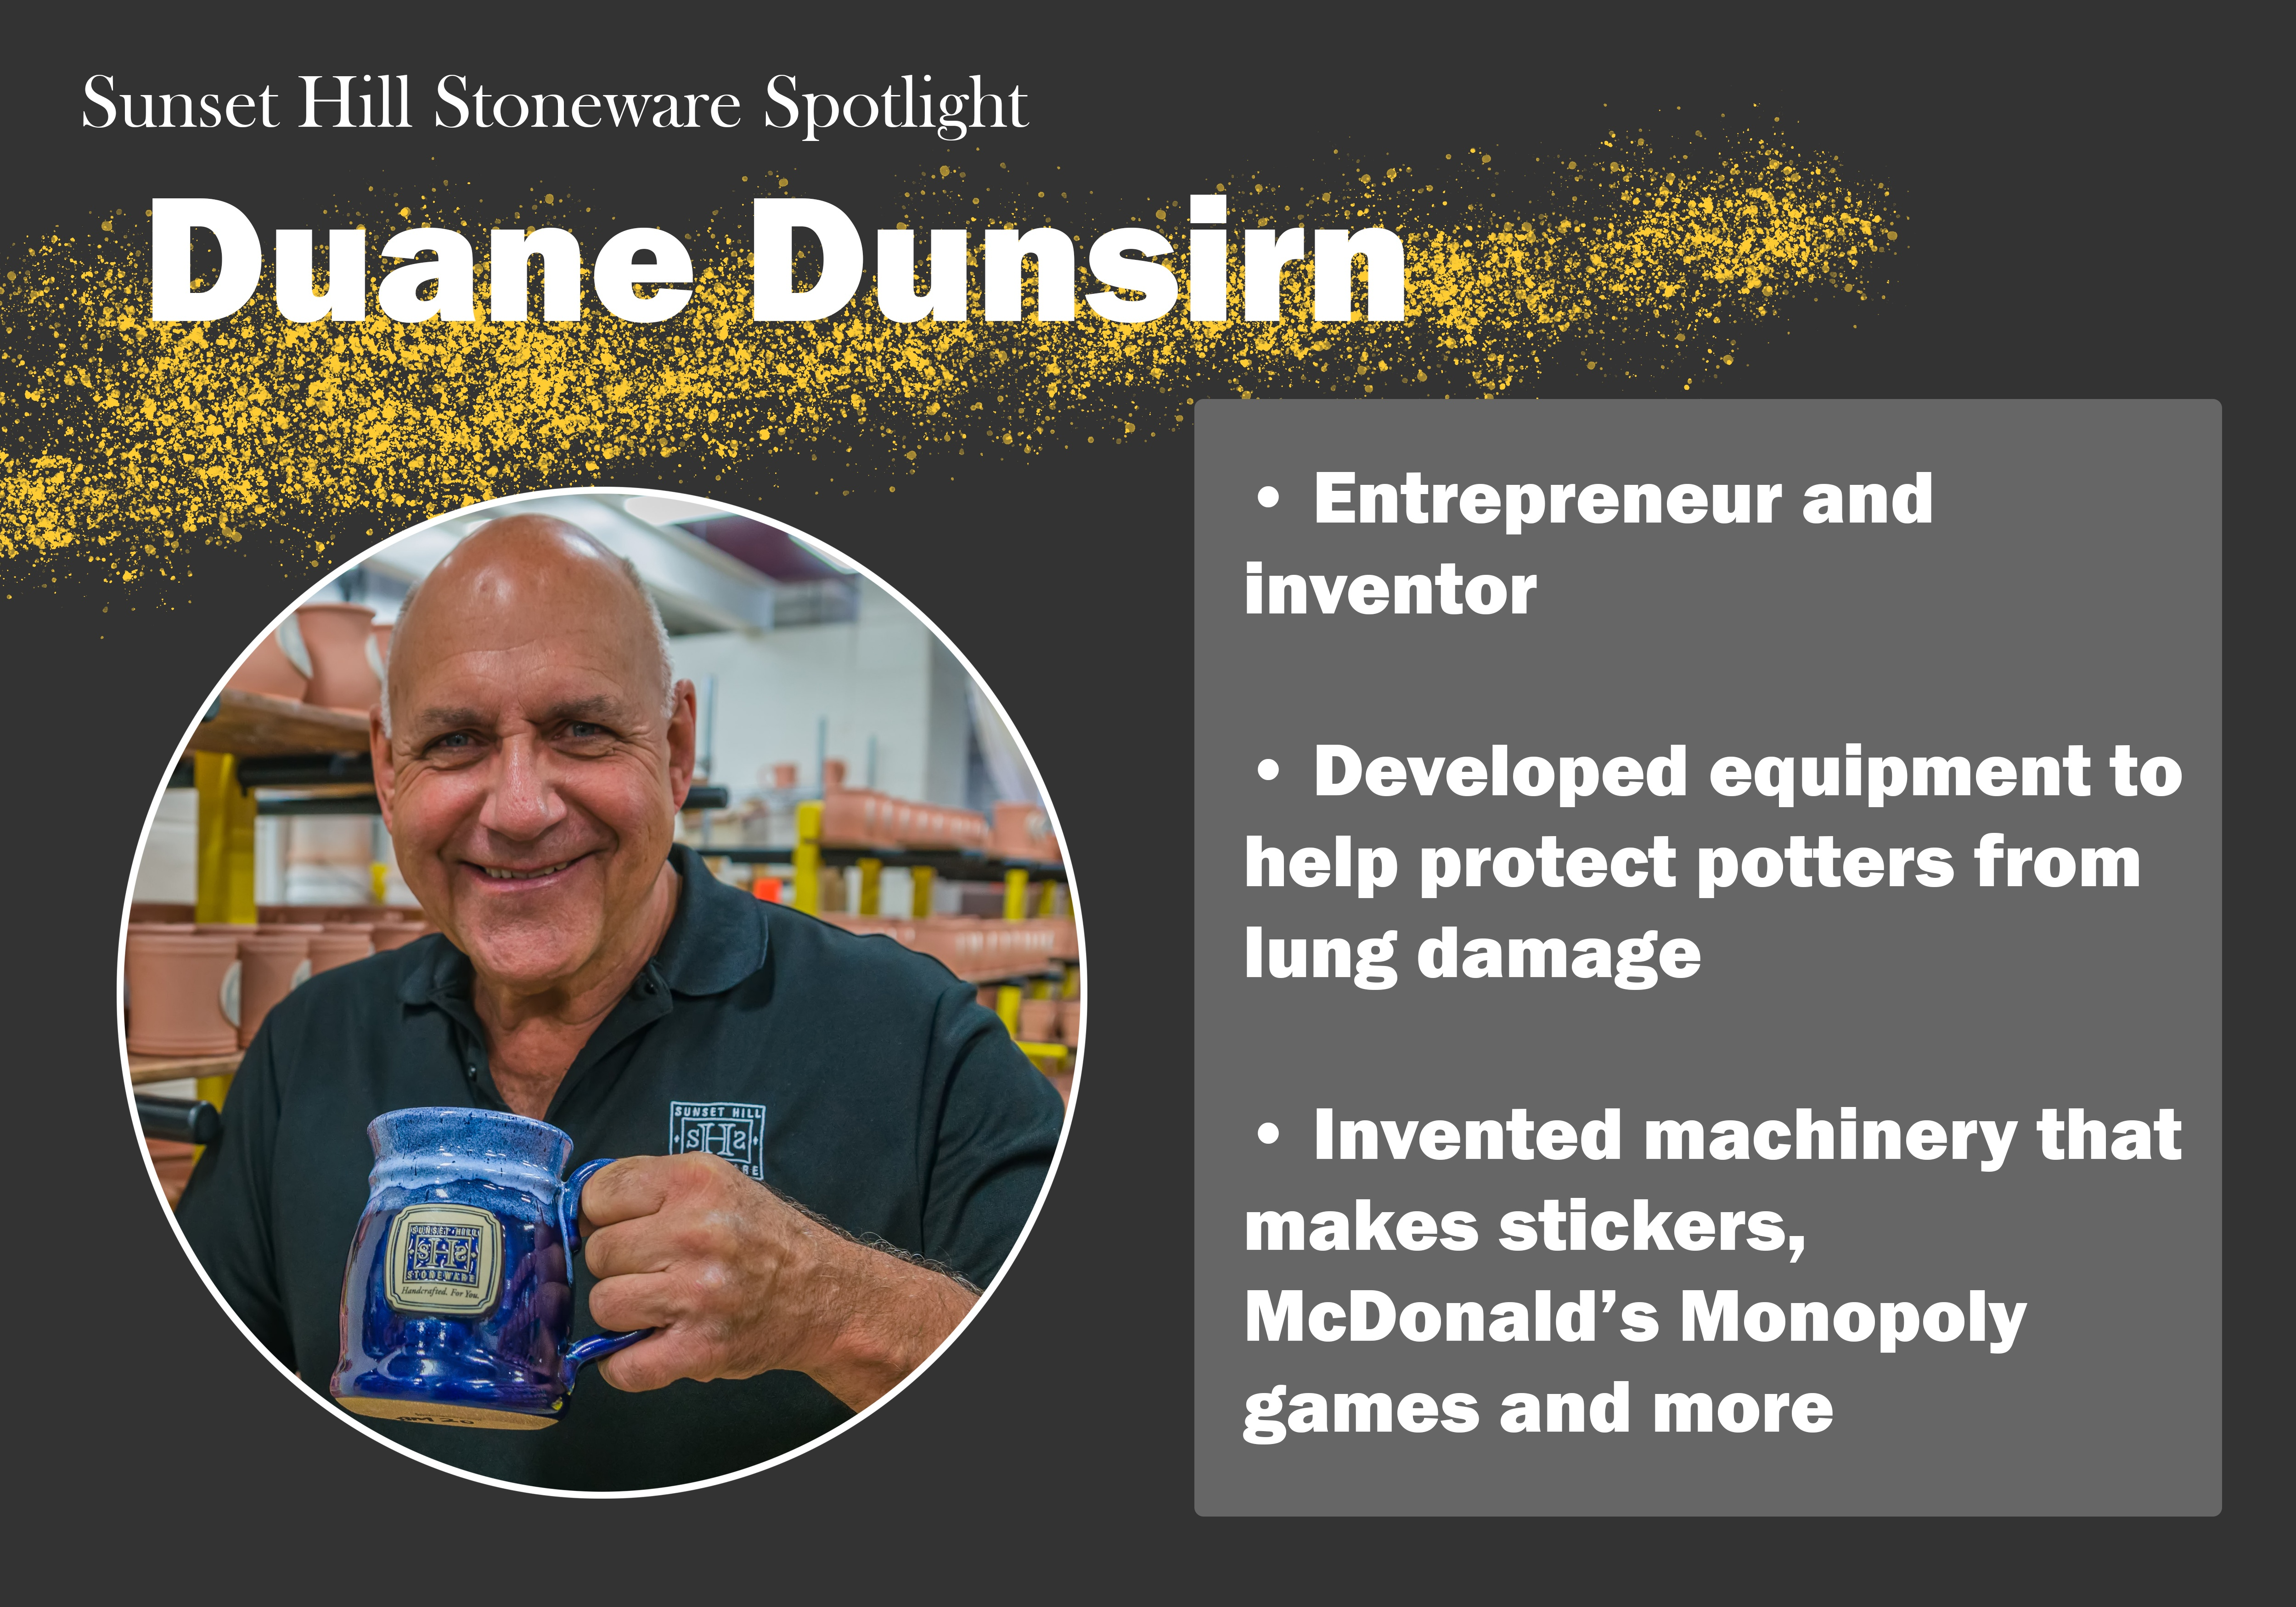 The entrepreneurial story behind Sunset Hill Stoneware